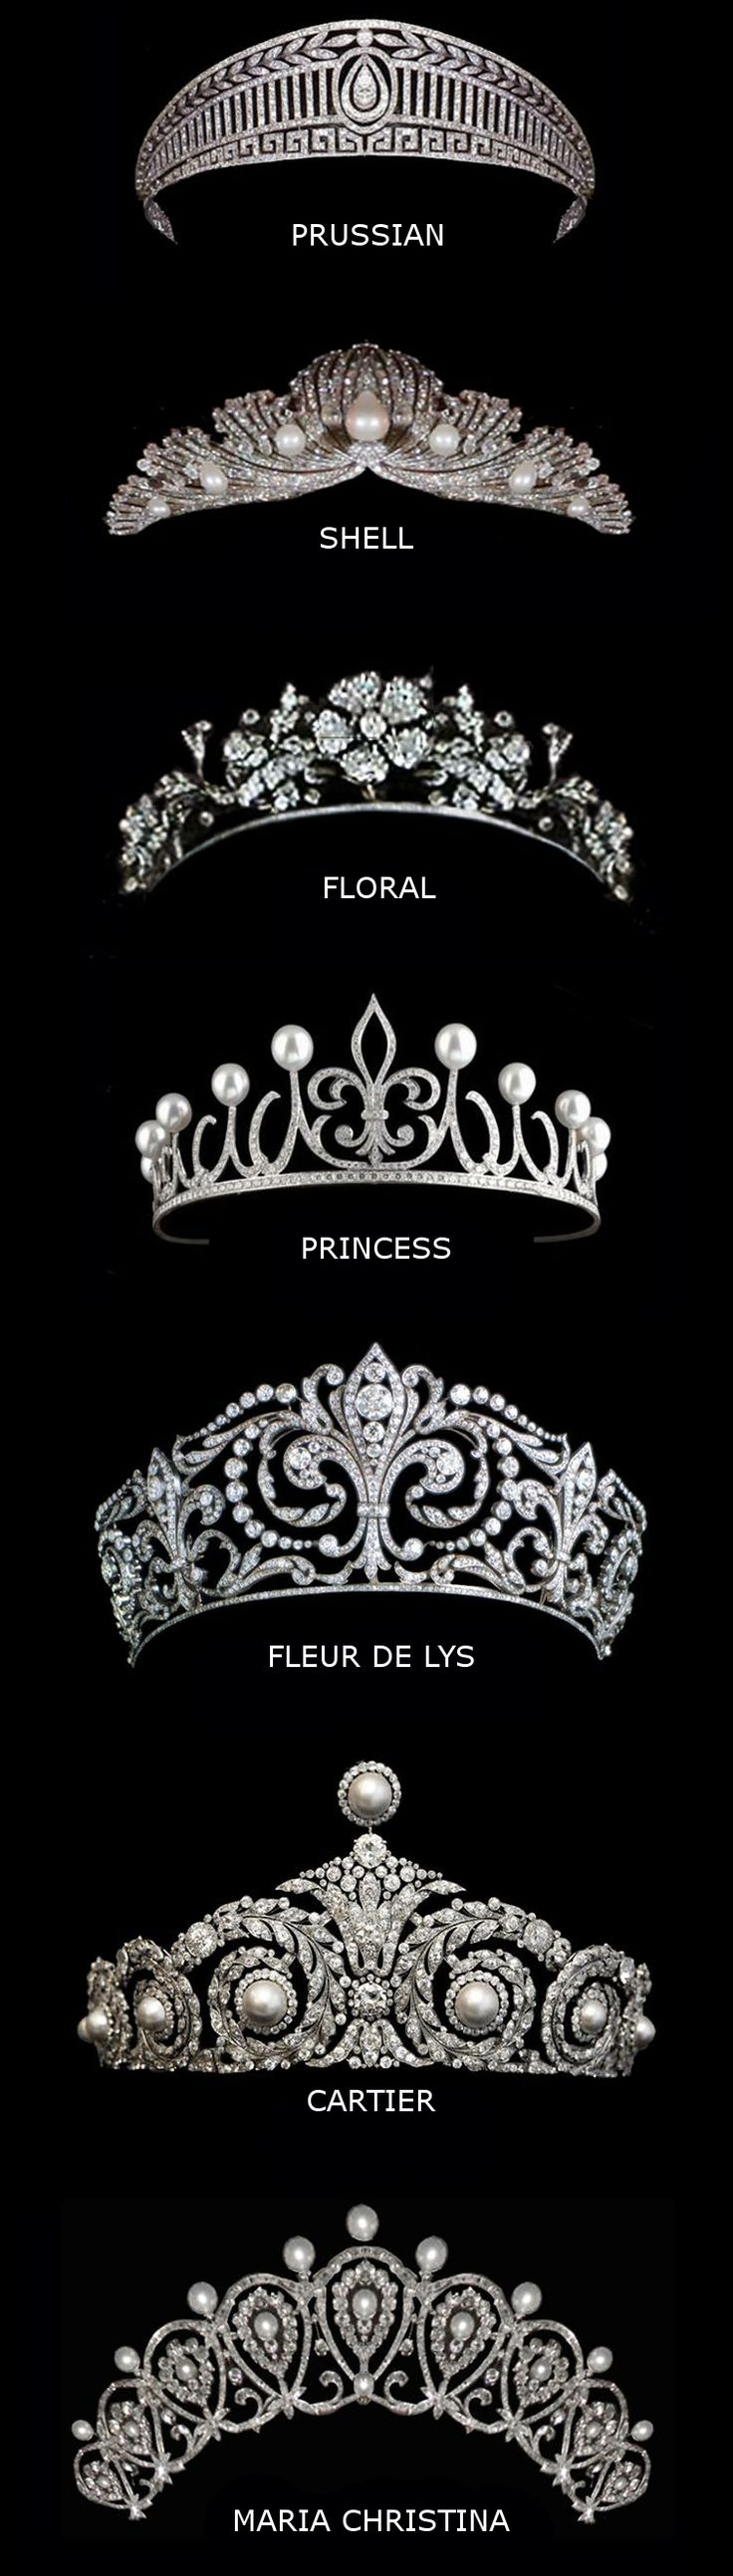 Spanish royal tiaras